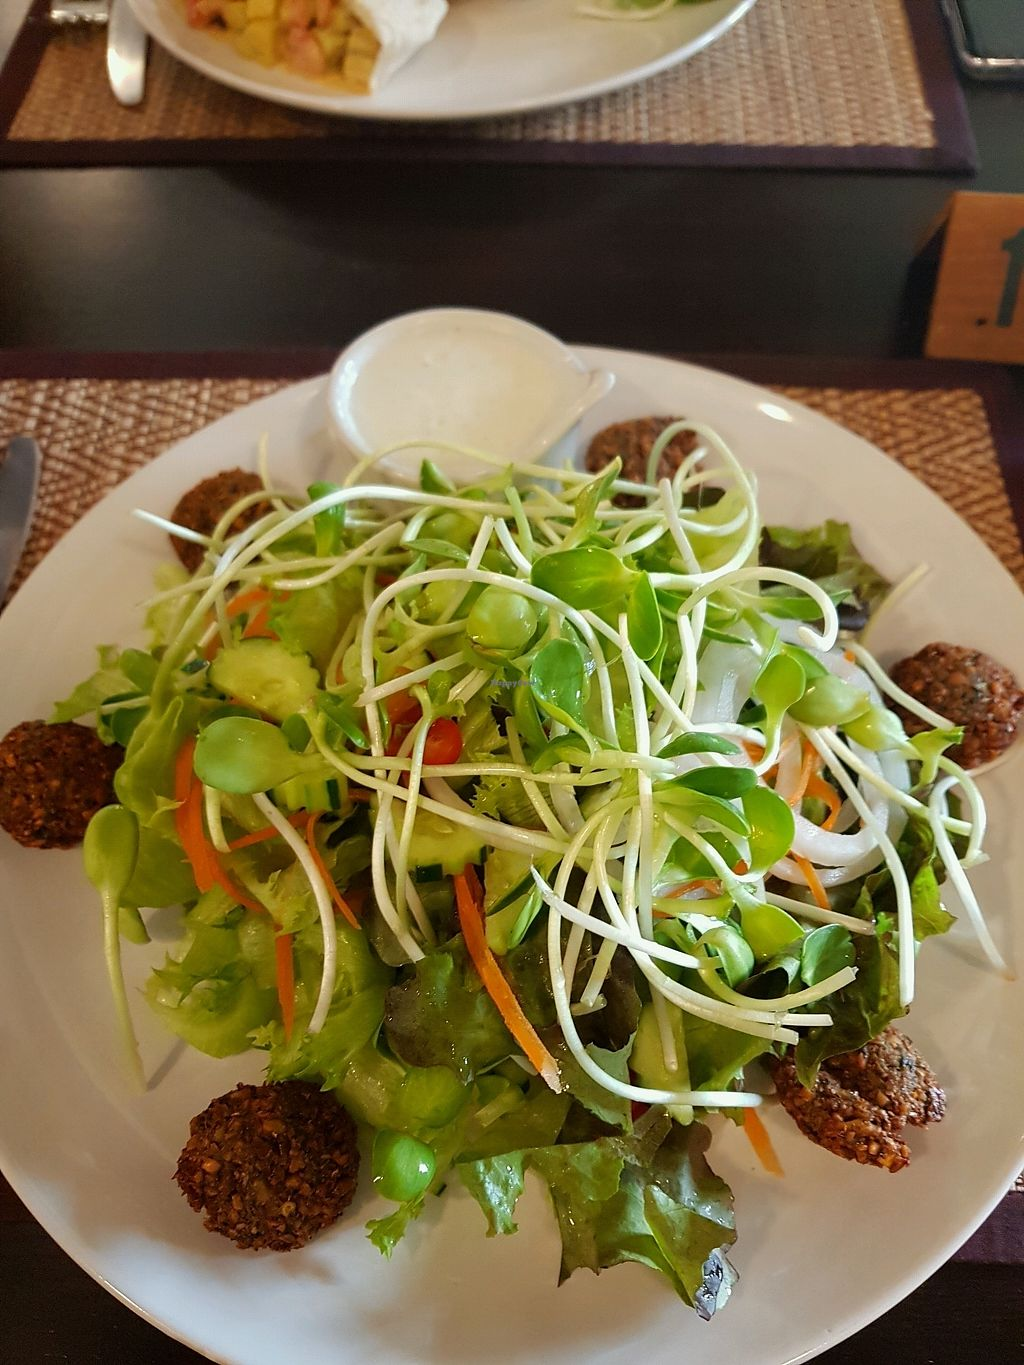 "Photo of Goodsouls Kitchen  by <a href=""/members/profile/AliMac84"">AliMac84</a> <br/>falafel salad <br/> March 24, 2018  - <a href='/contact/abuse/image/107183/375184'>Report</a>"